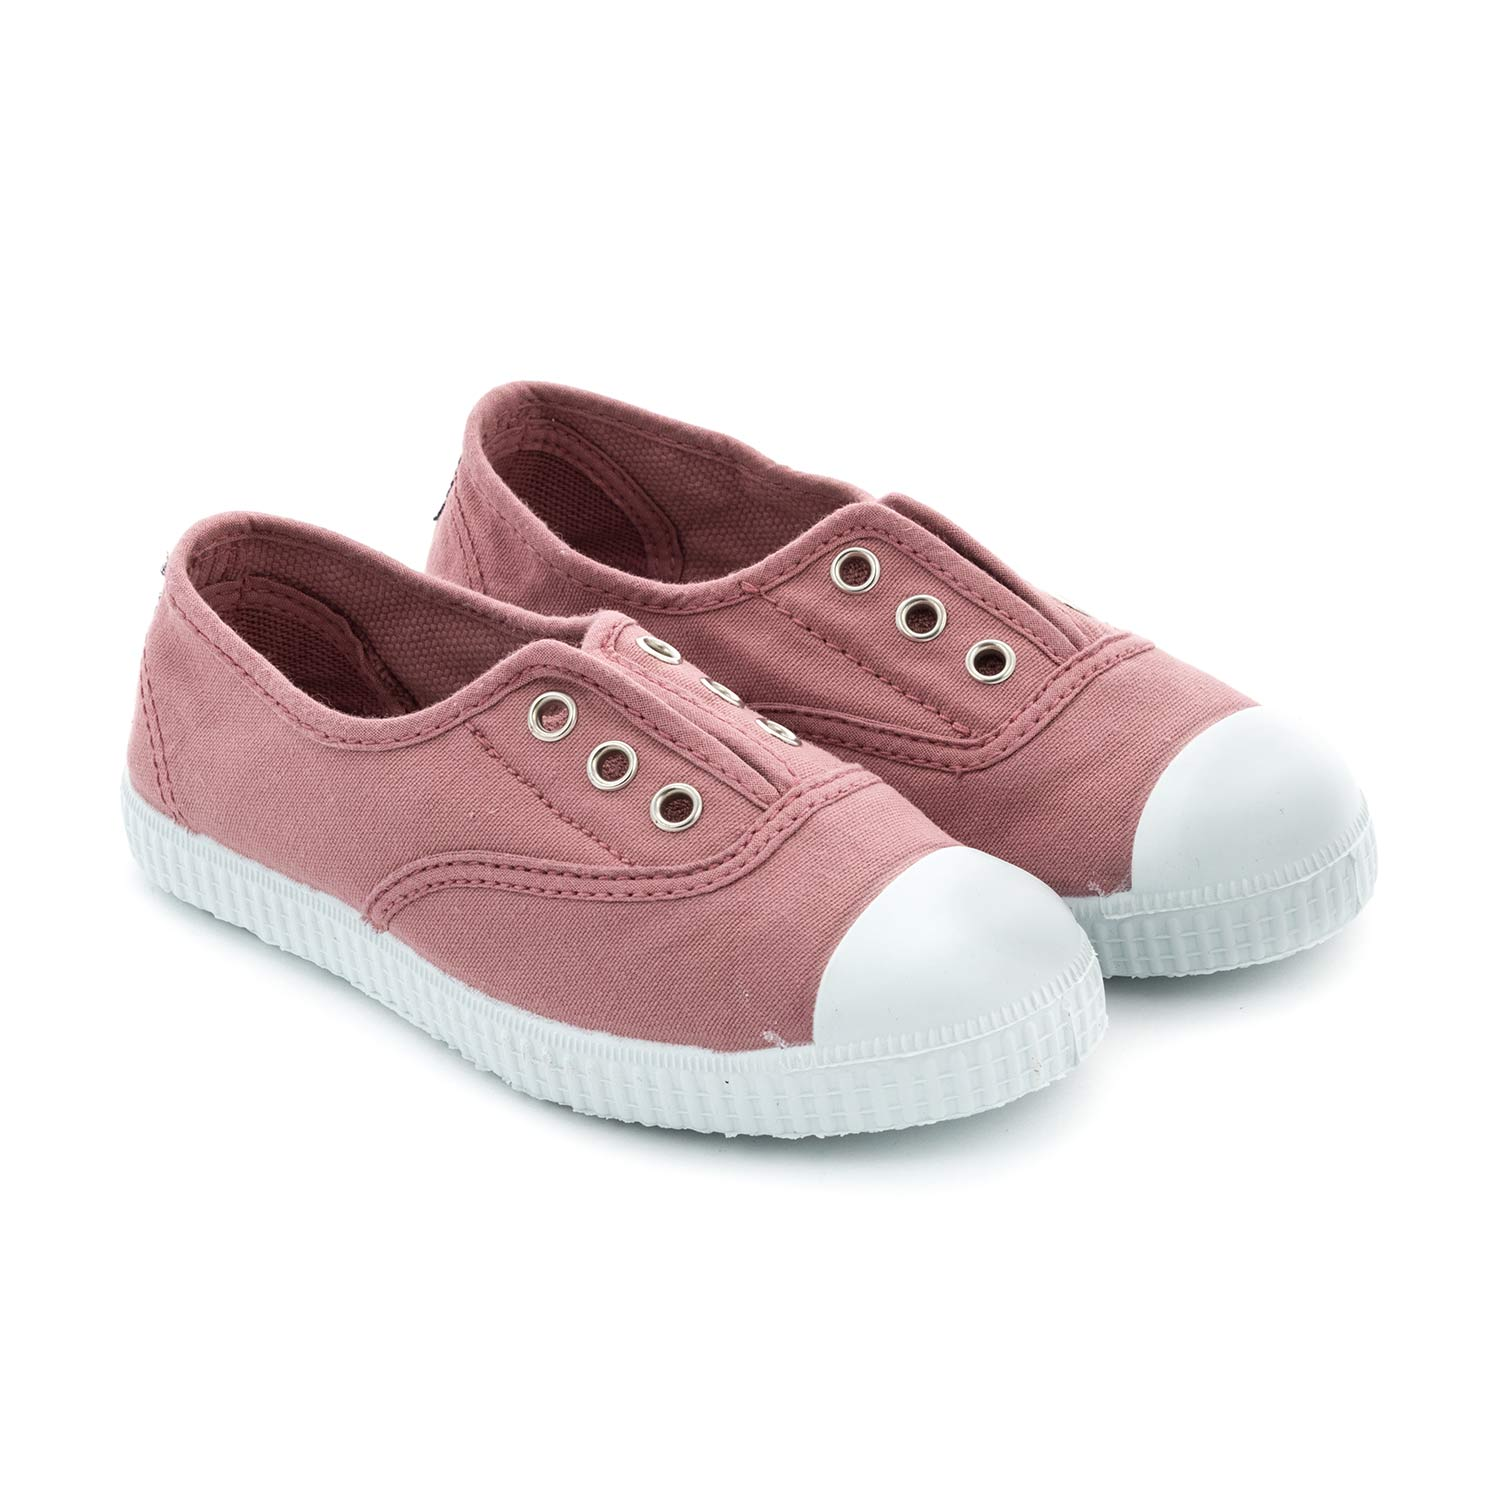 new product a4688 0f8cc Scarpe Sneakers Rosa Bambina